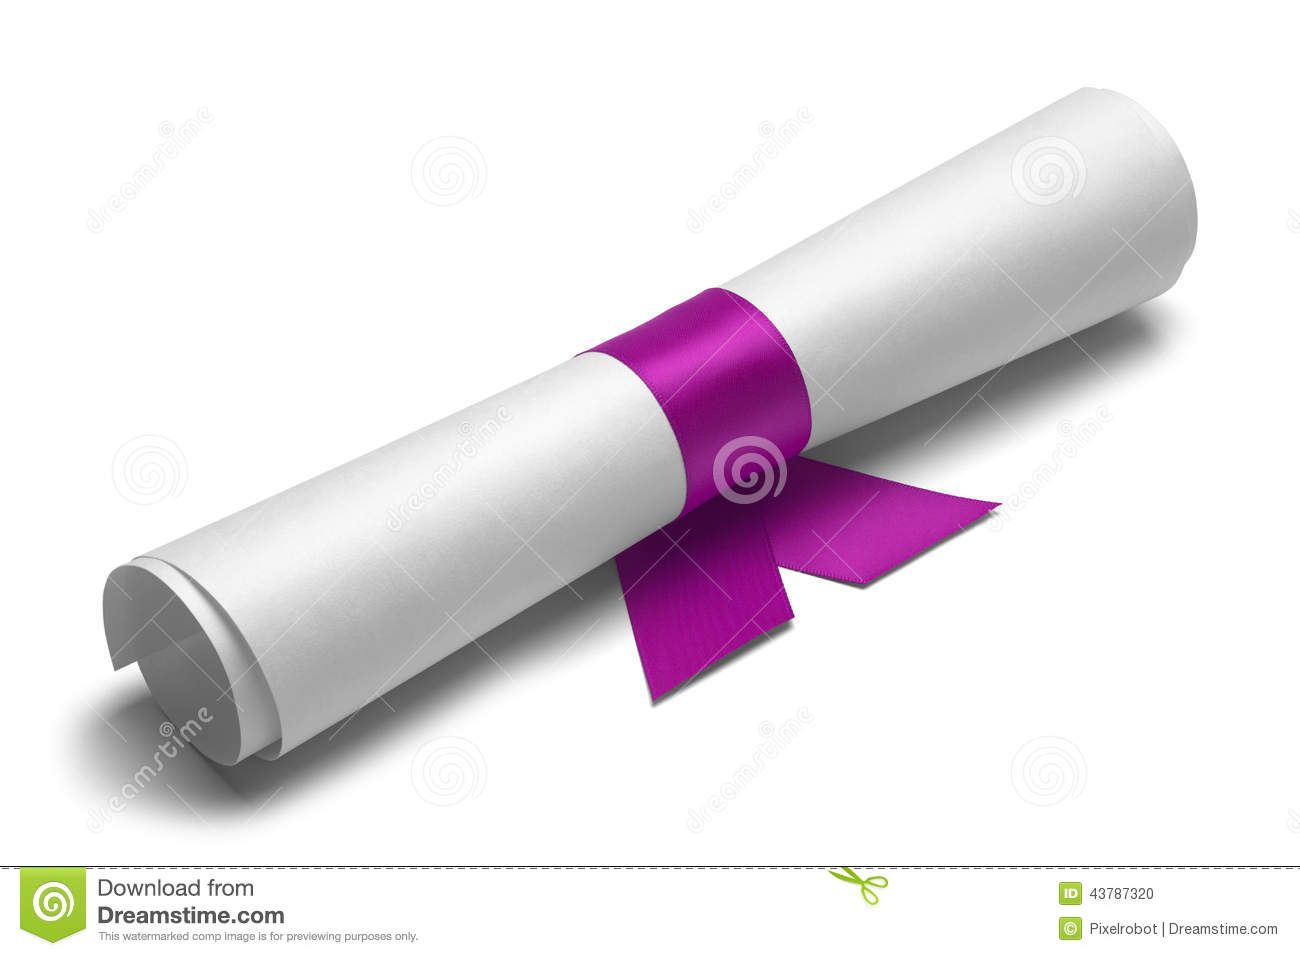 Diploma tied with pink ribbon on a white isolated background.